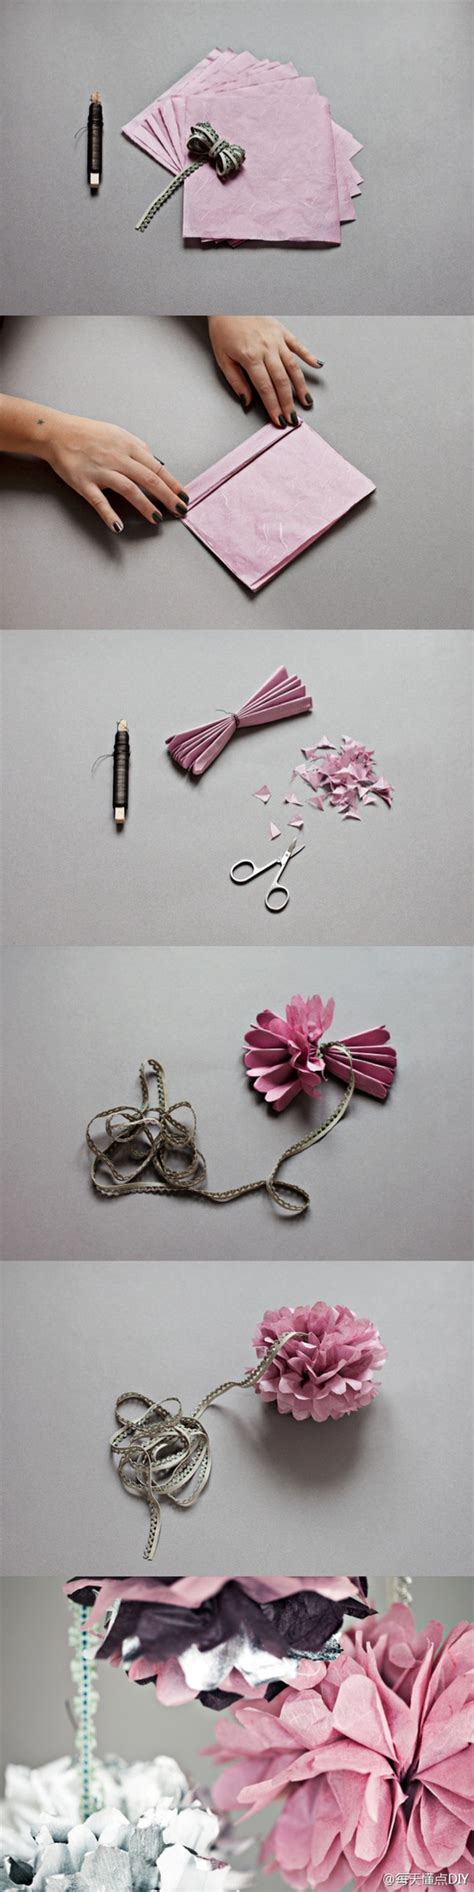 10 diy crafts ideas for diy ideas tips